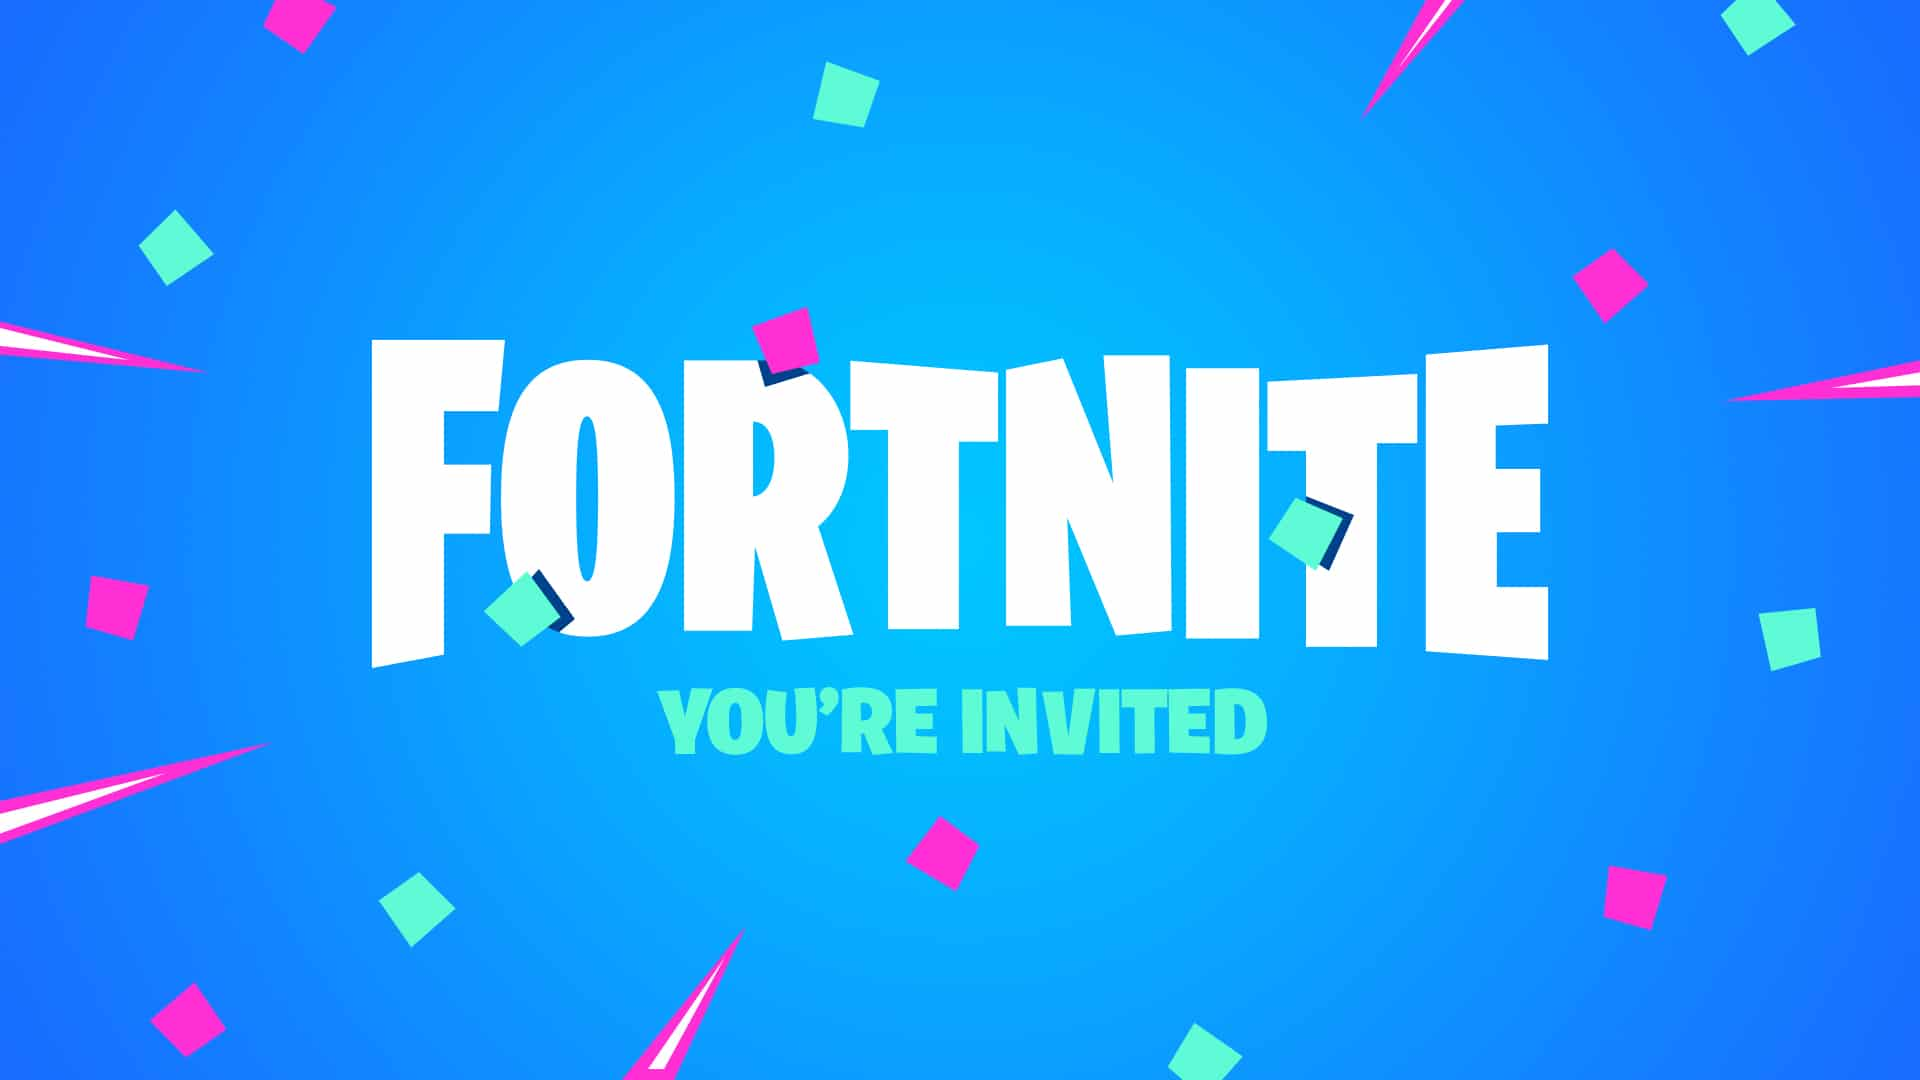 Fortnite Birthday Event 2020 Challenges and Rewards